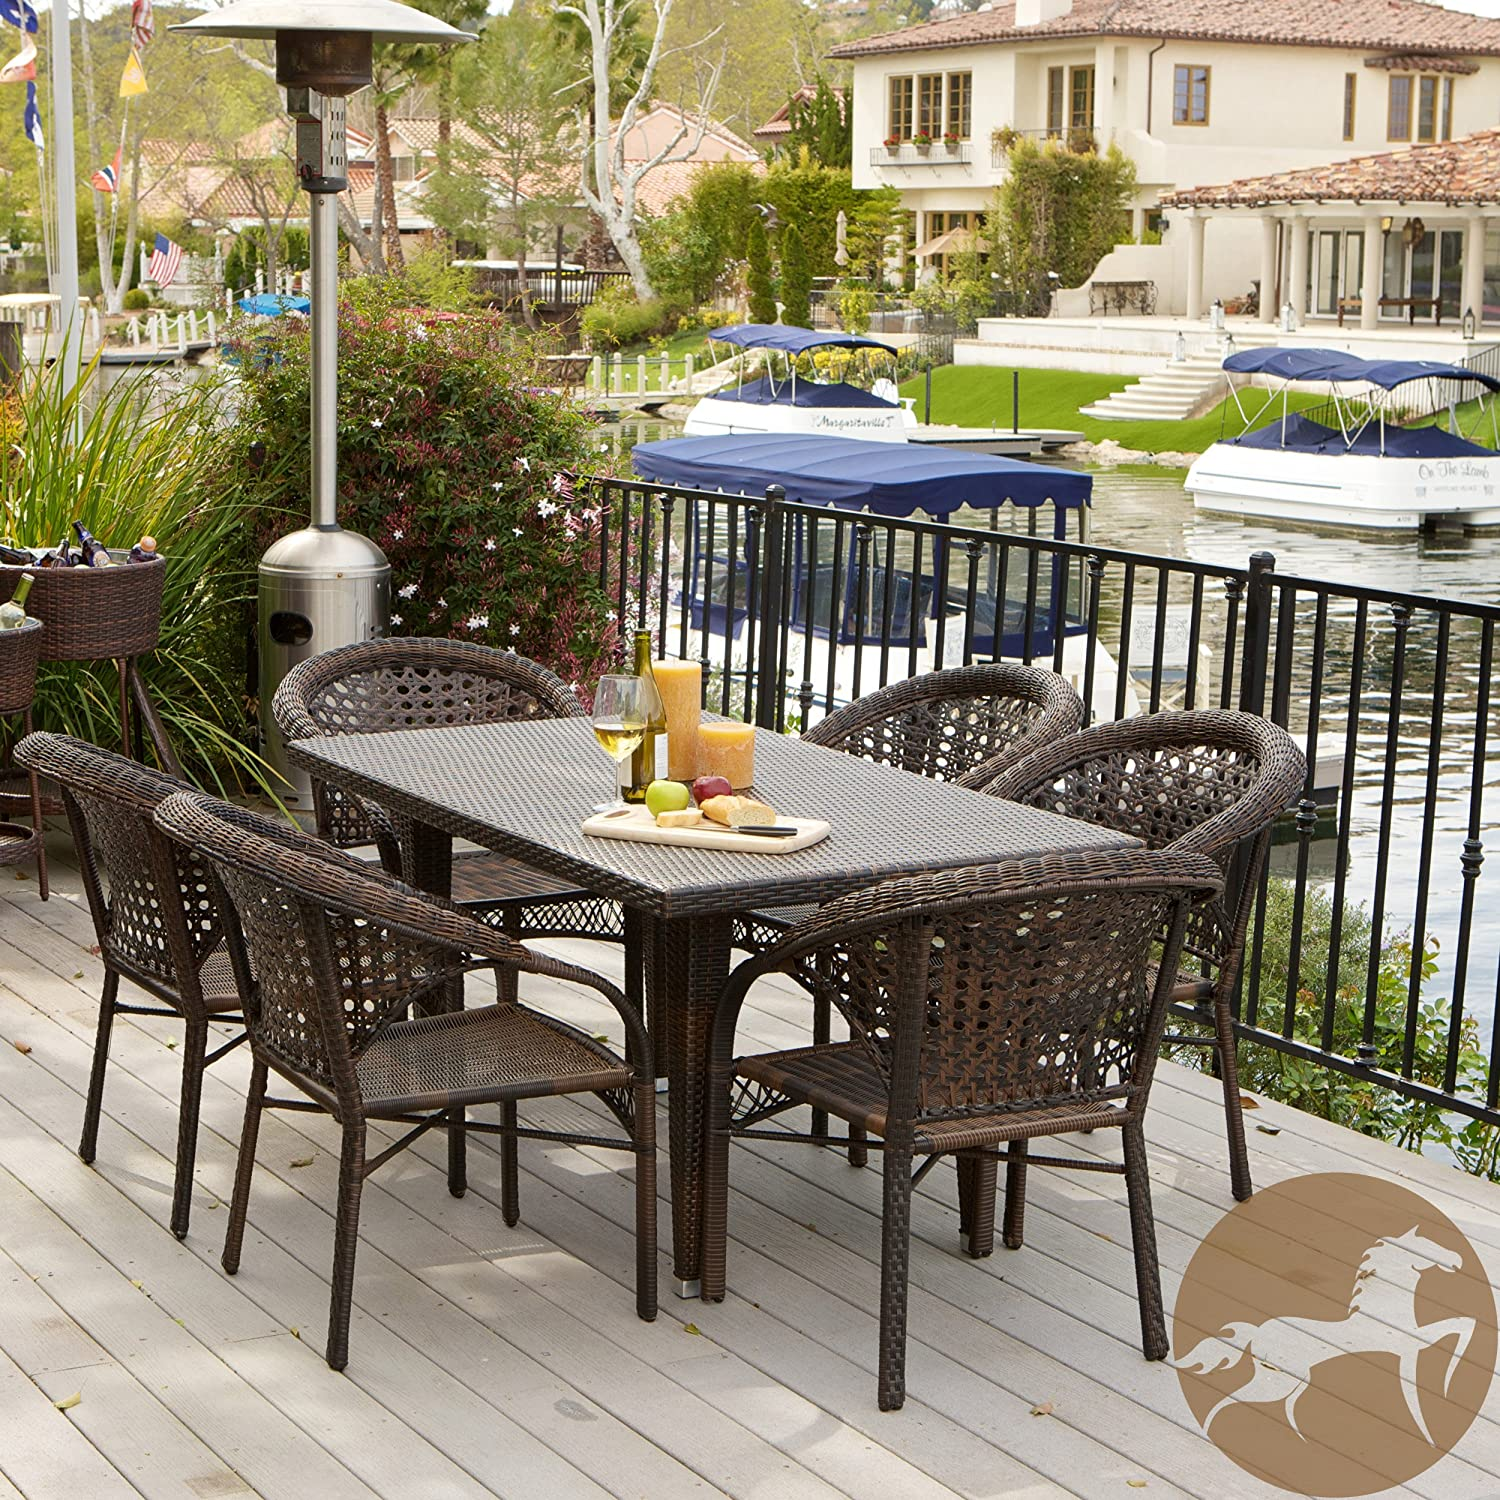 Malibu Patio Furniture Set